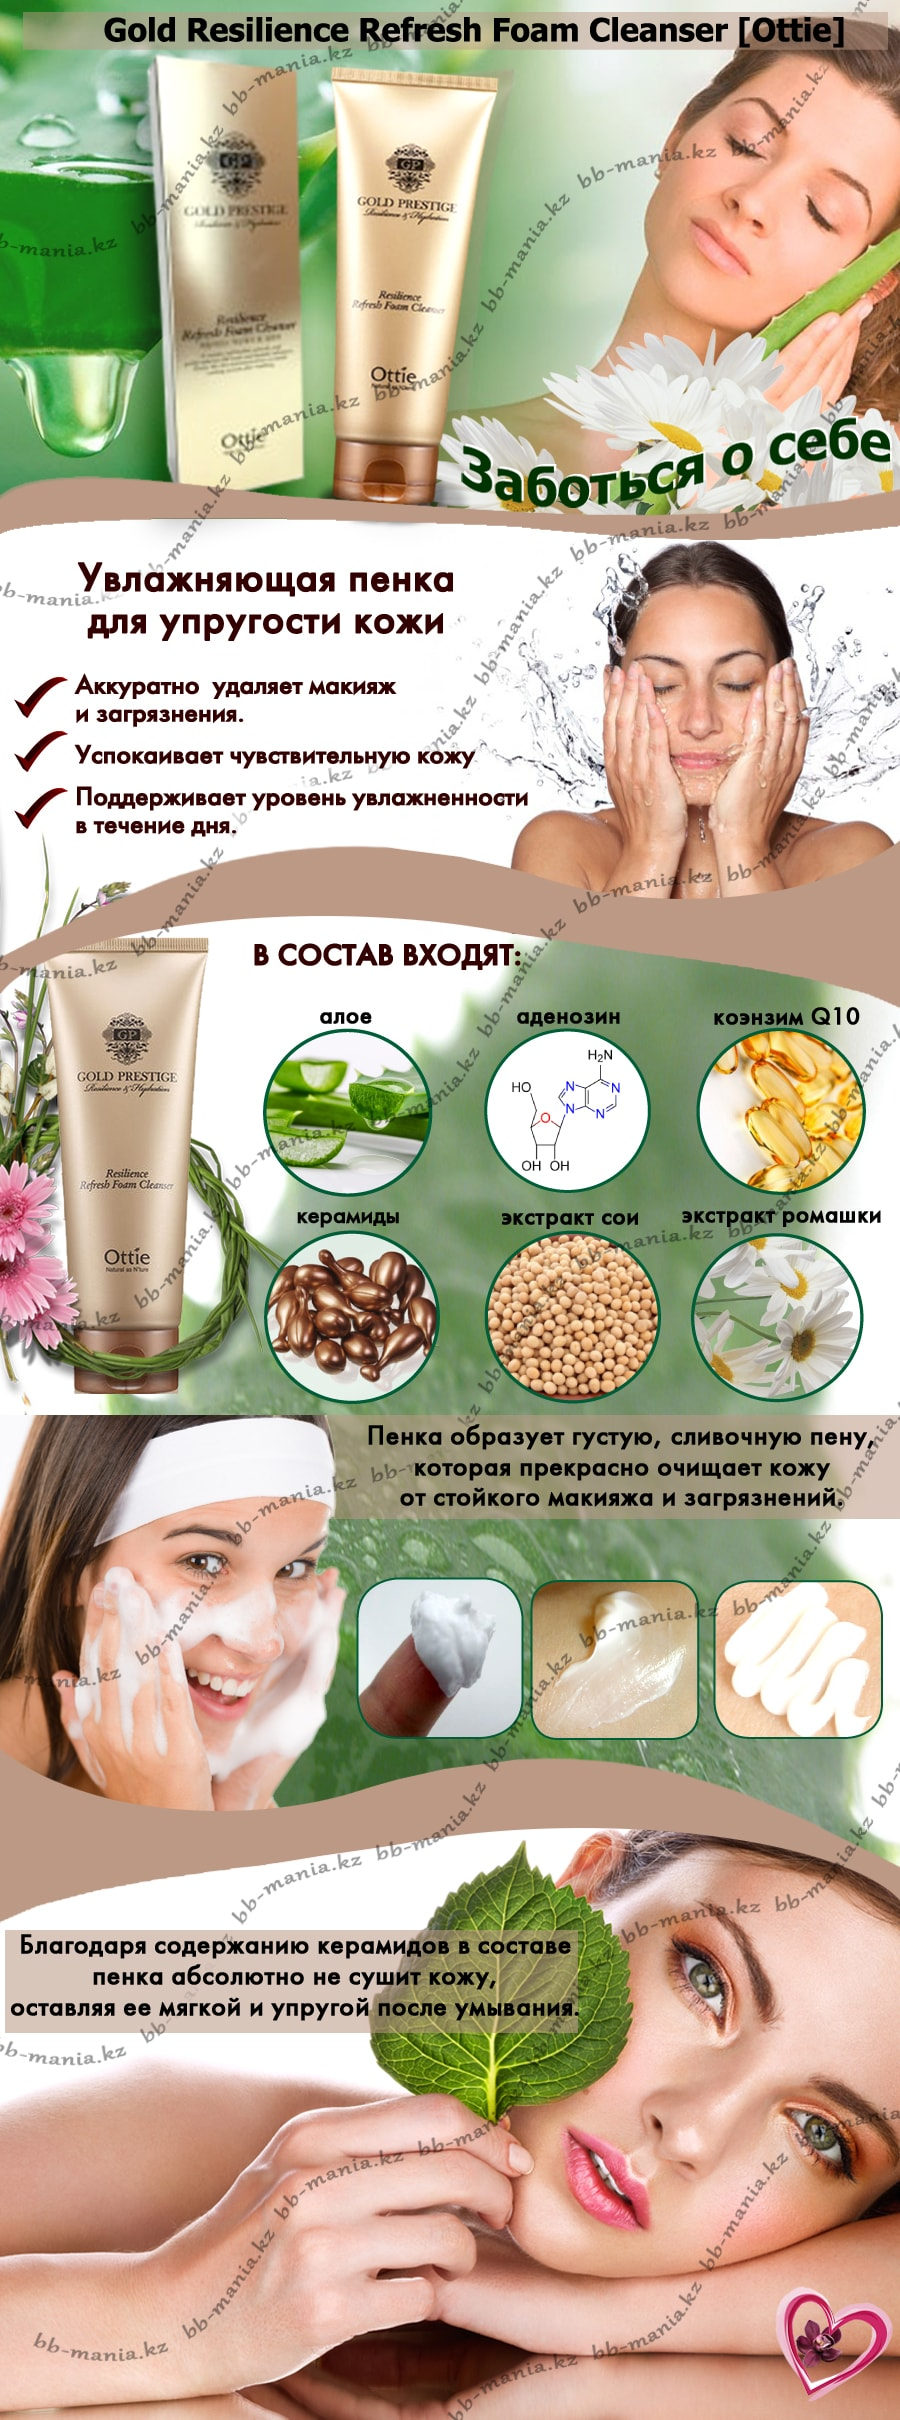 Карточка-отпр-Miniature-Gold-Resilience-Refresh-Foam-Cleanser (1)-min